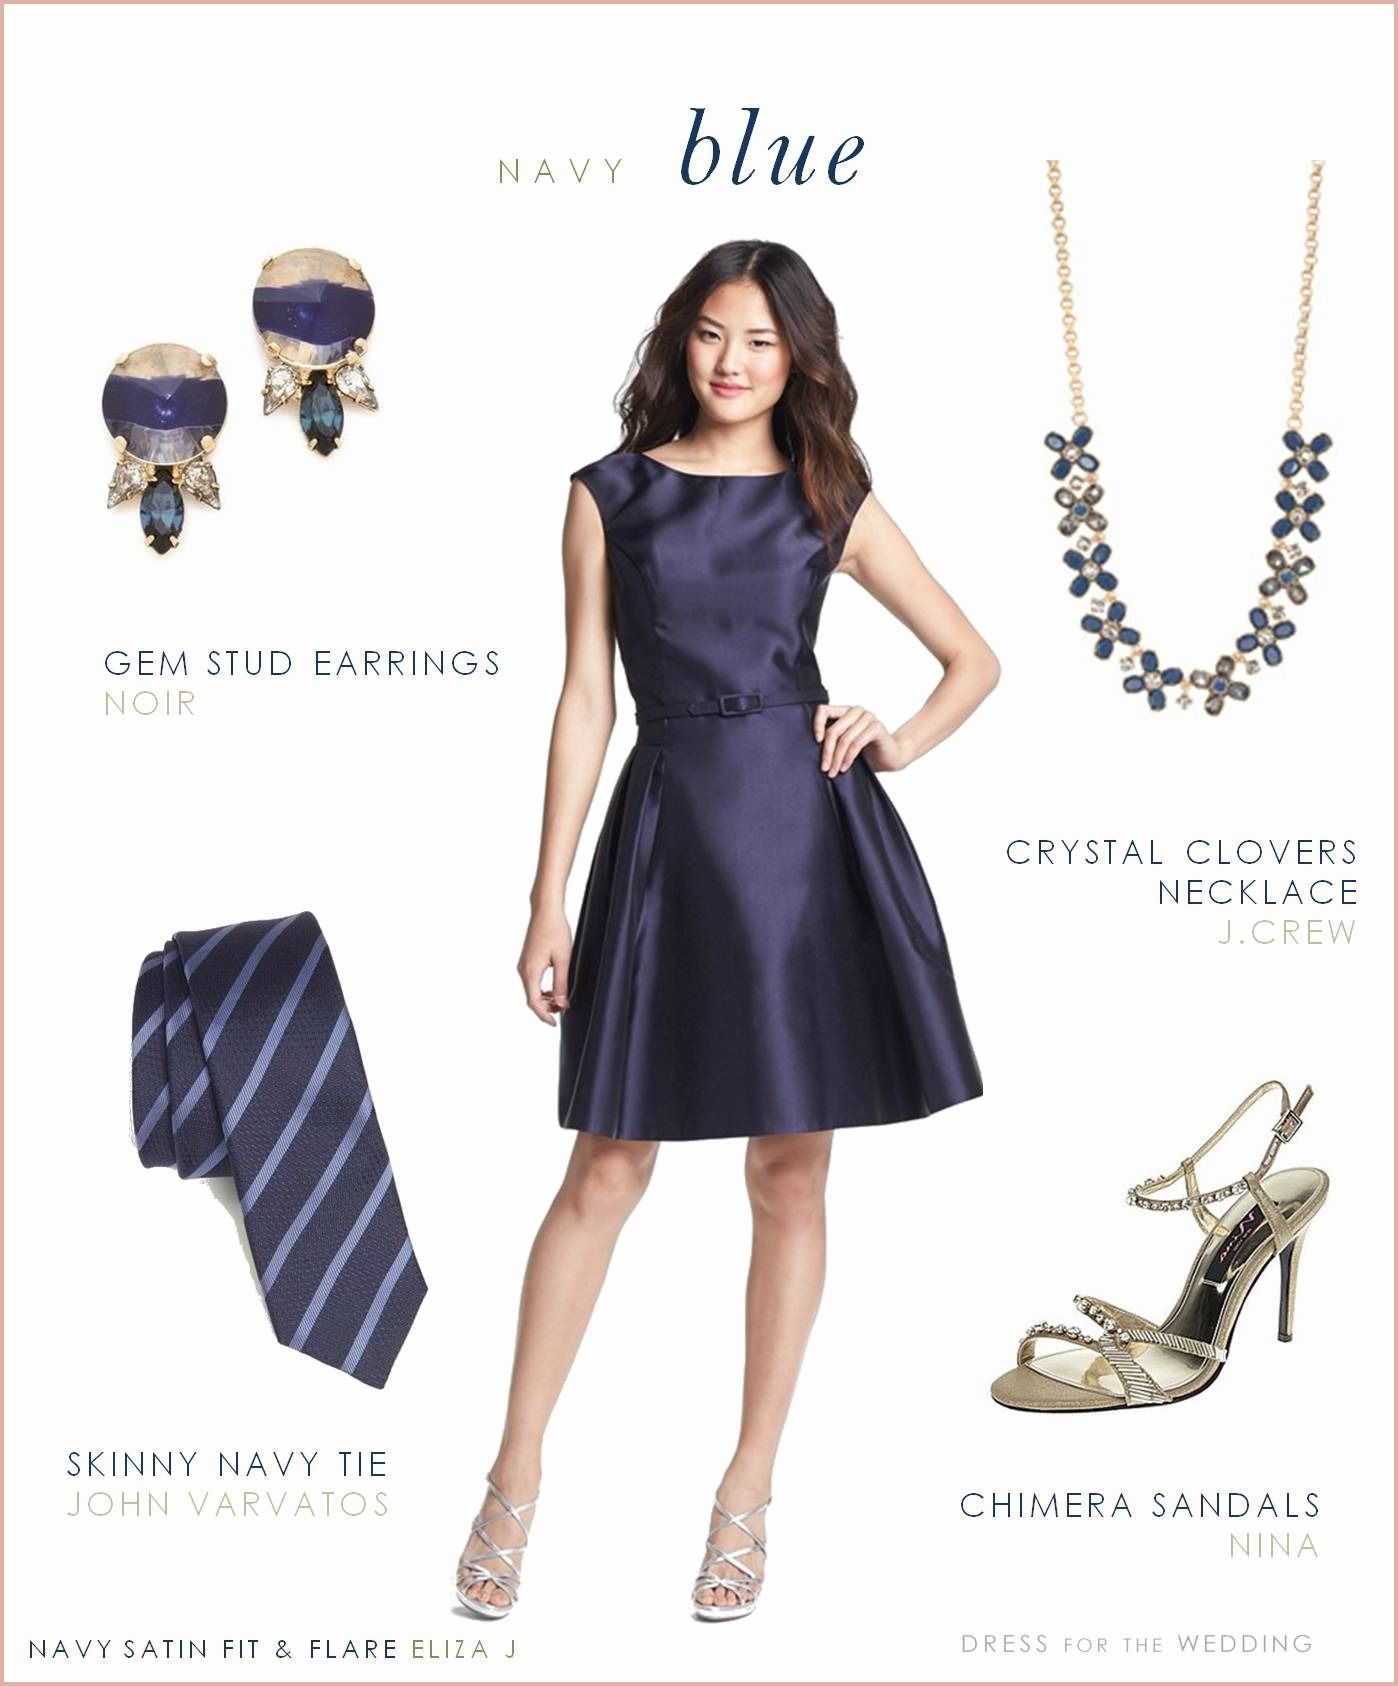 14 Stunning How To Accessorize A Navy Blue Dress For A Wedding [ 1686 x 1398 Pixel ]